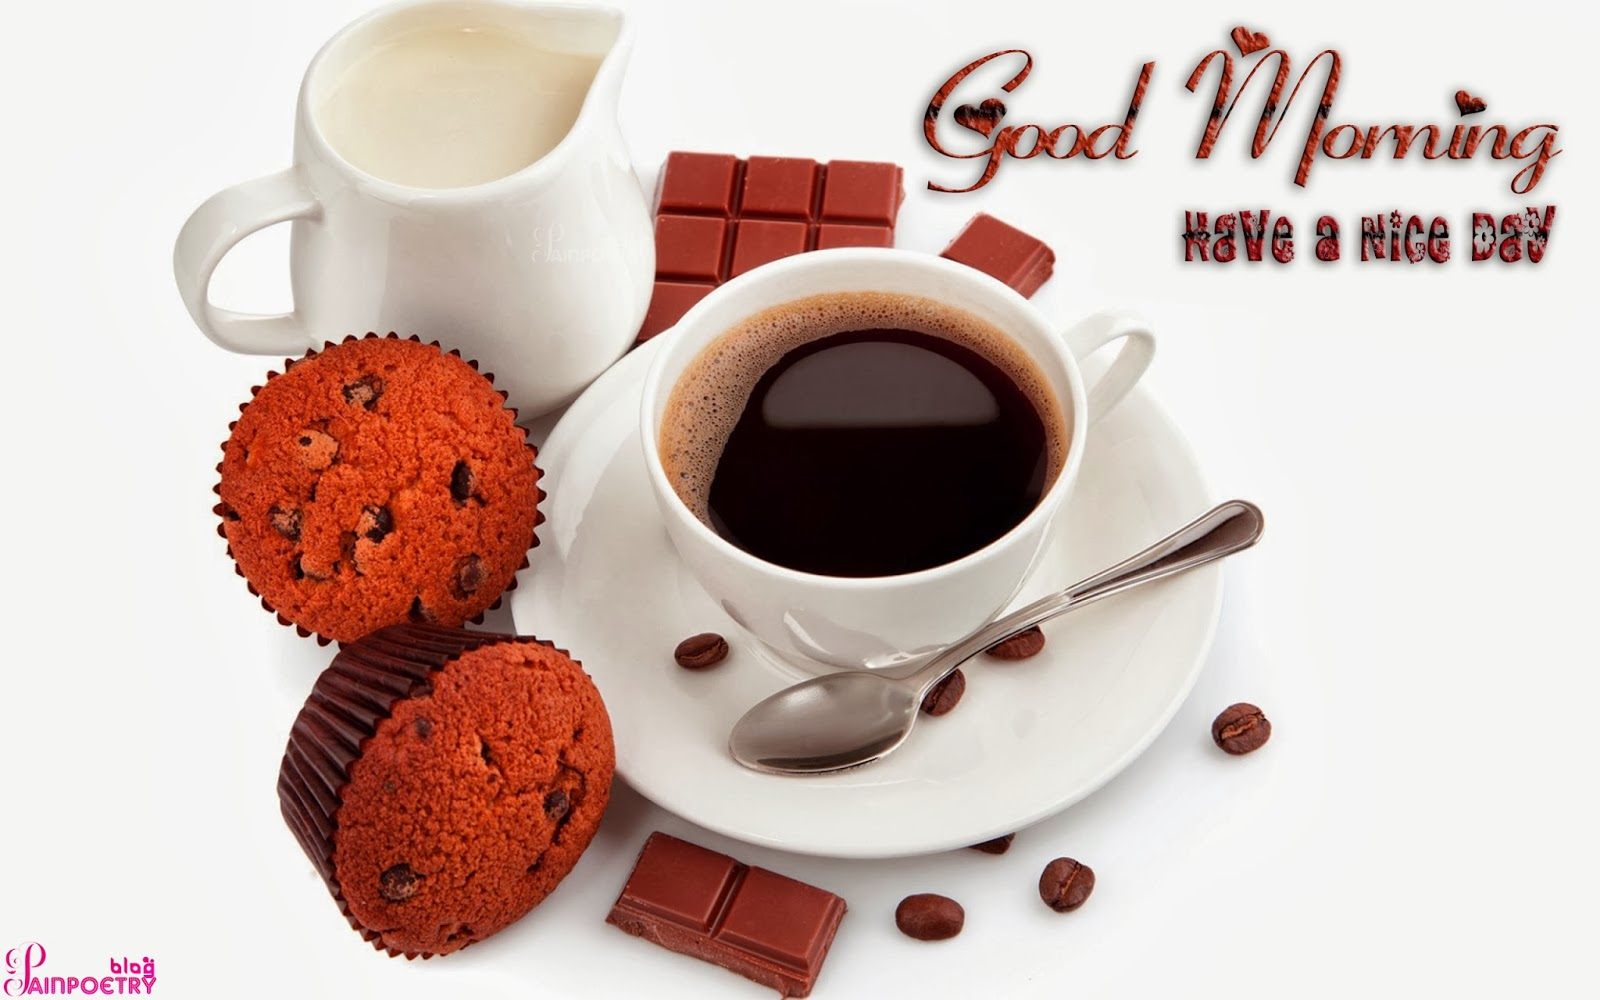 Good-Morning-Wishes-Wallpaper-With-A-Cup-Of-Tea-And-Two-Cakes-Image-HD-Wide